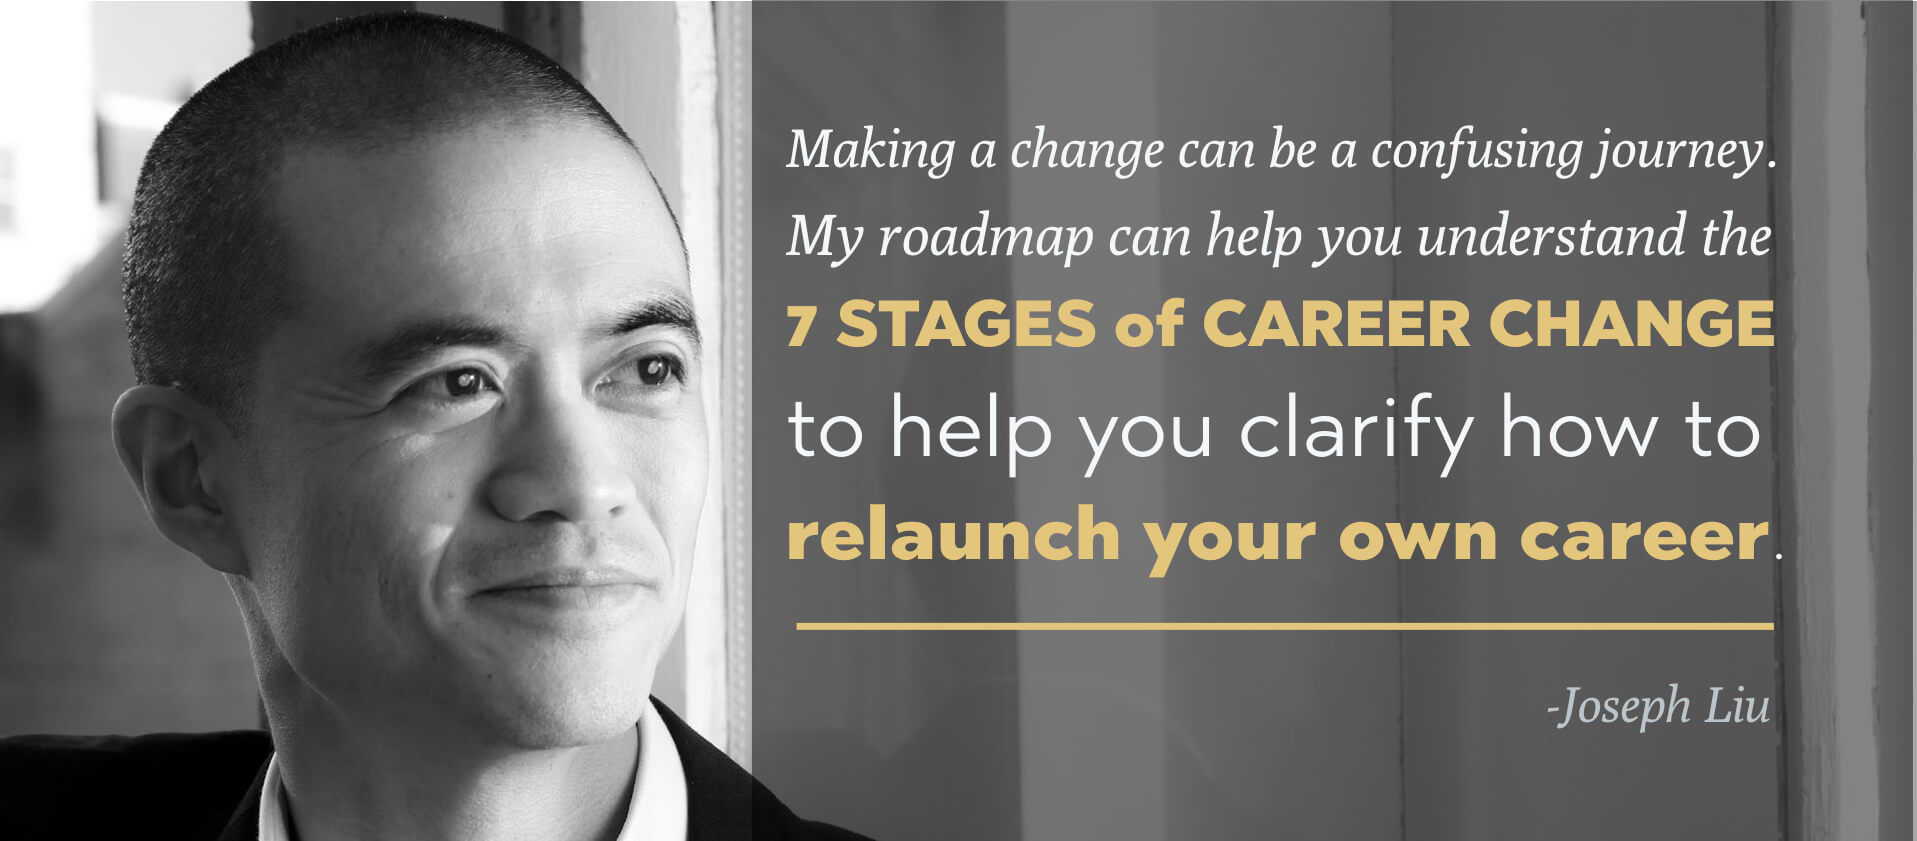 Joseph Liu- 7 Stages of Career Change Quote